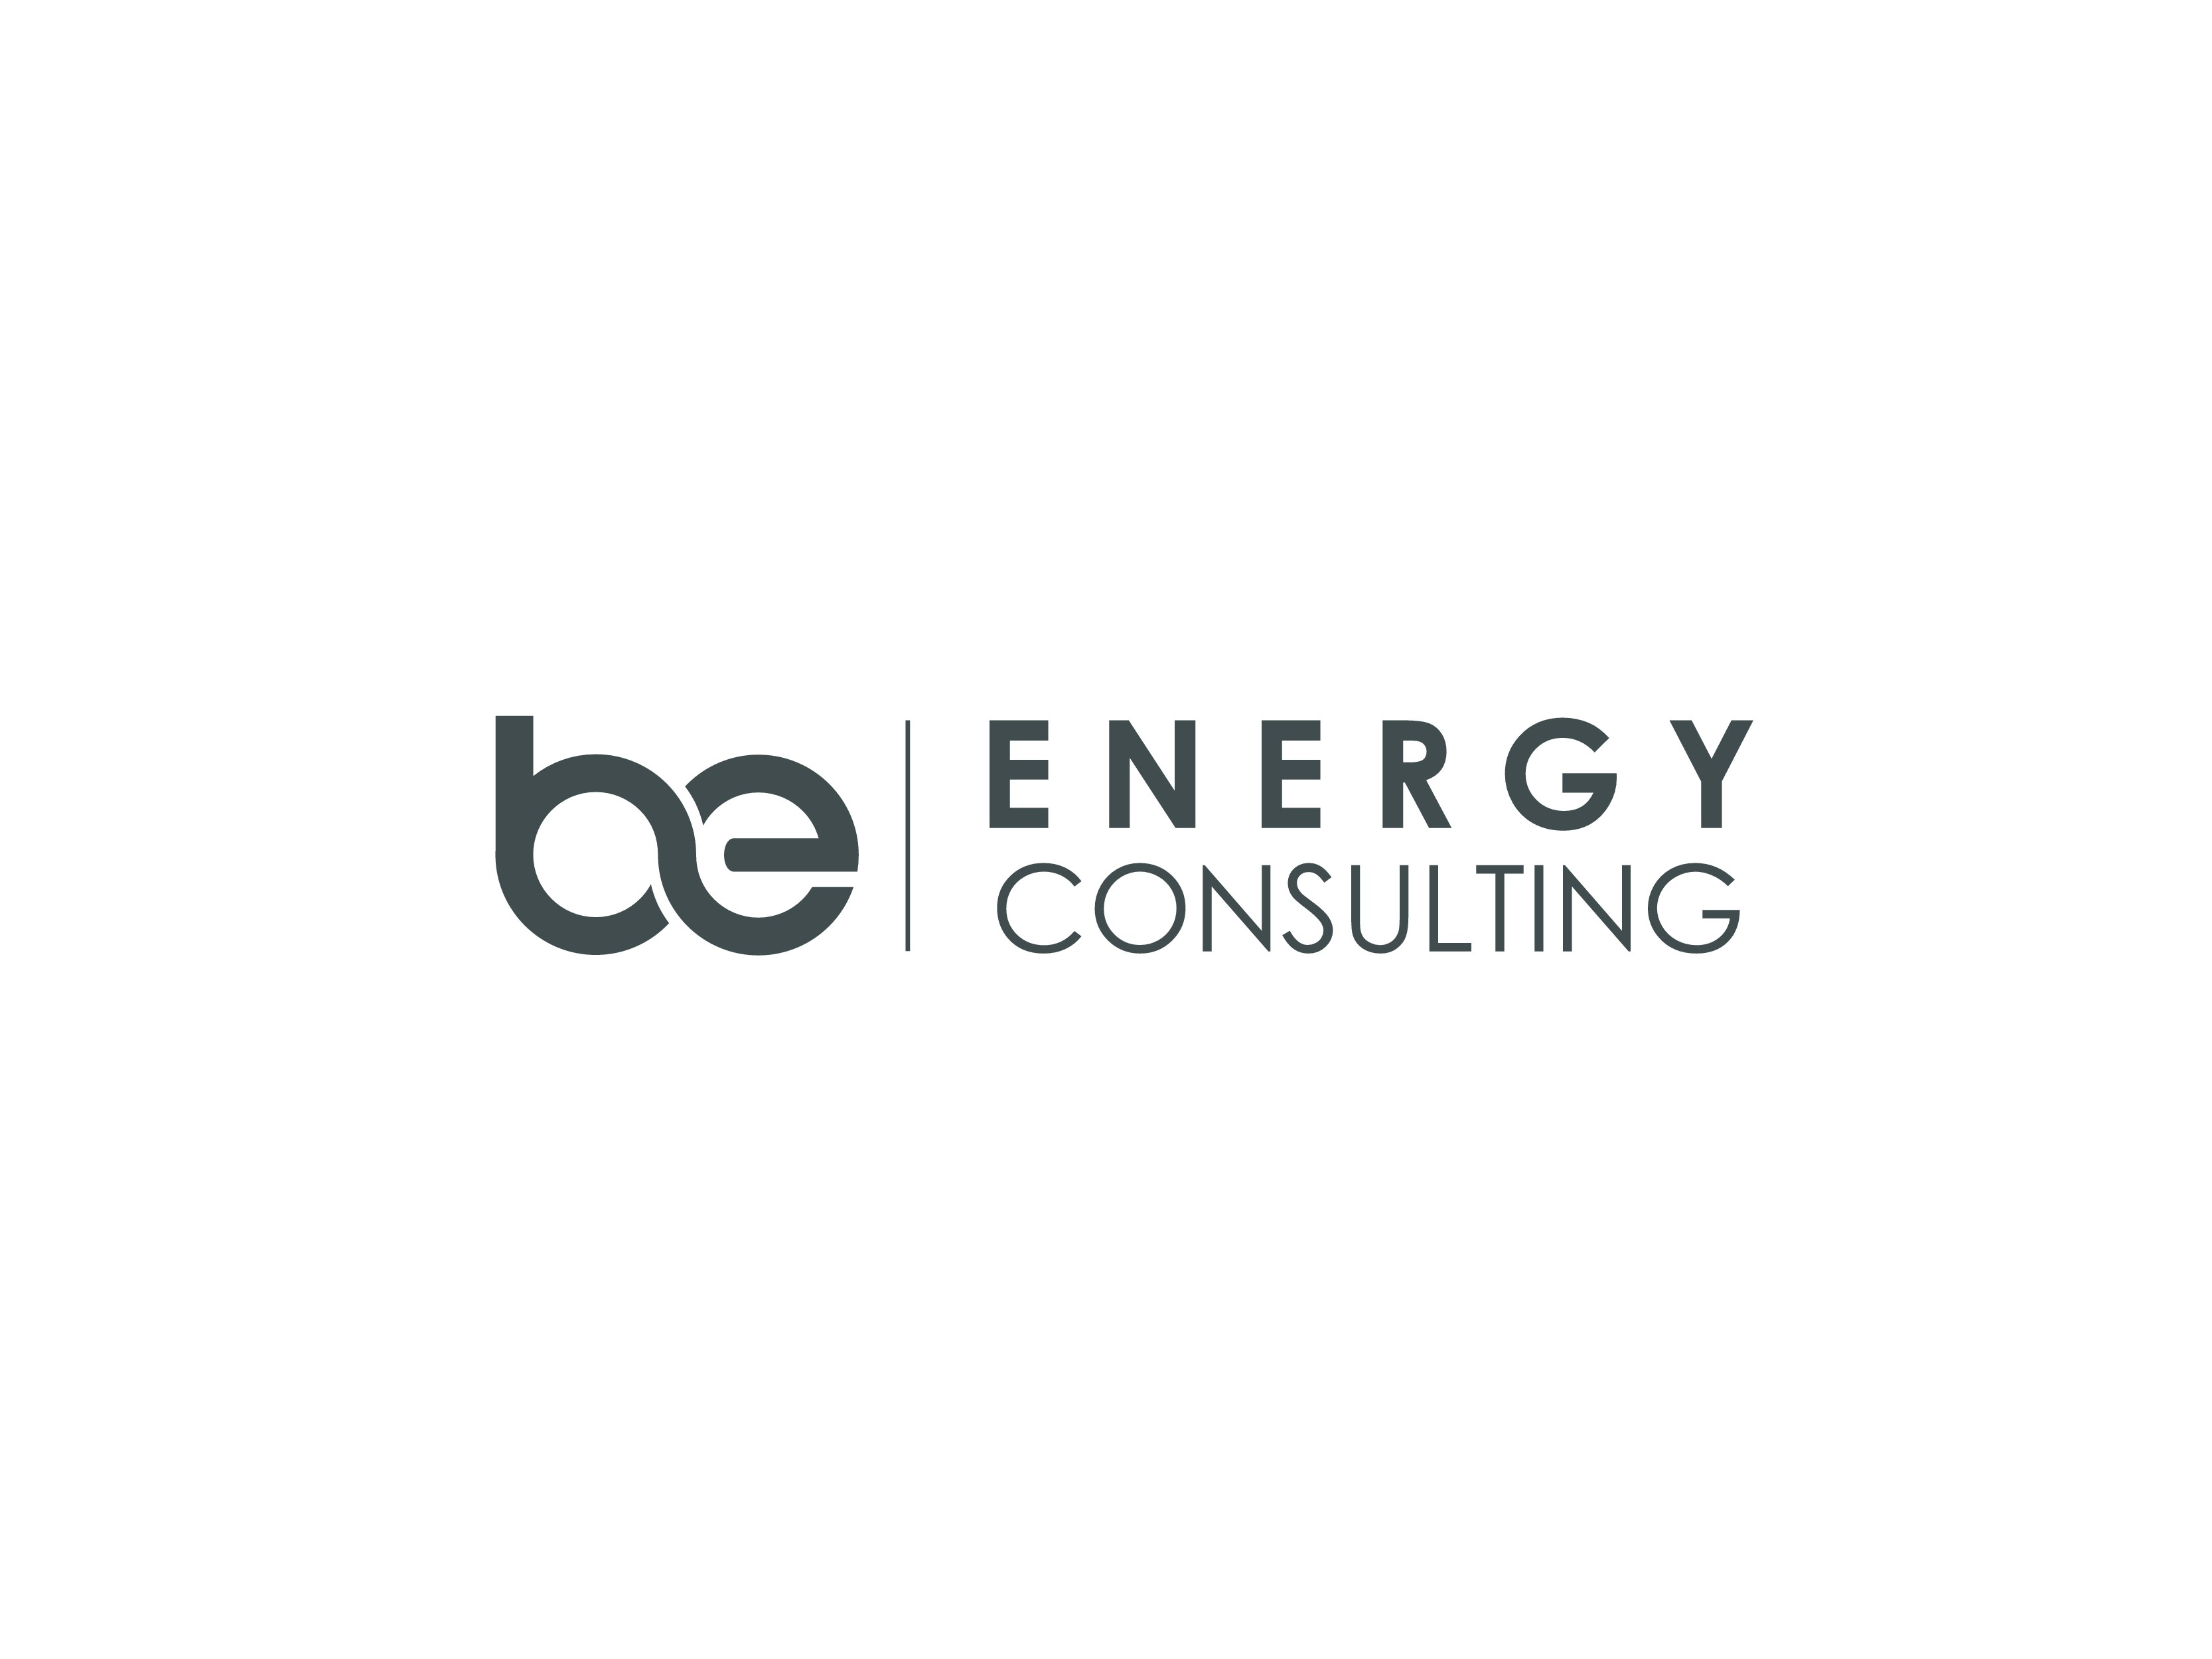 Create a logo for a strategy consulting firm focusing on energy and the energy transition